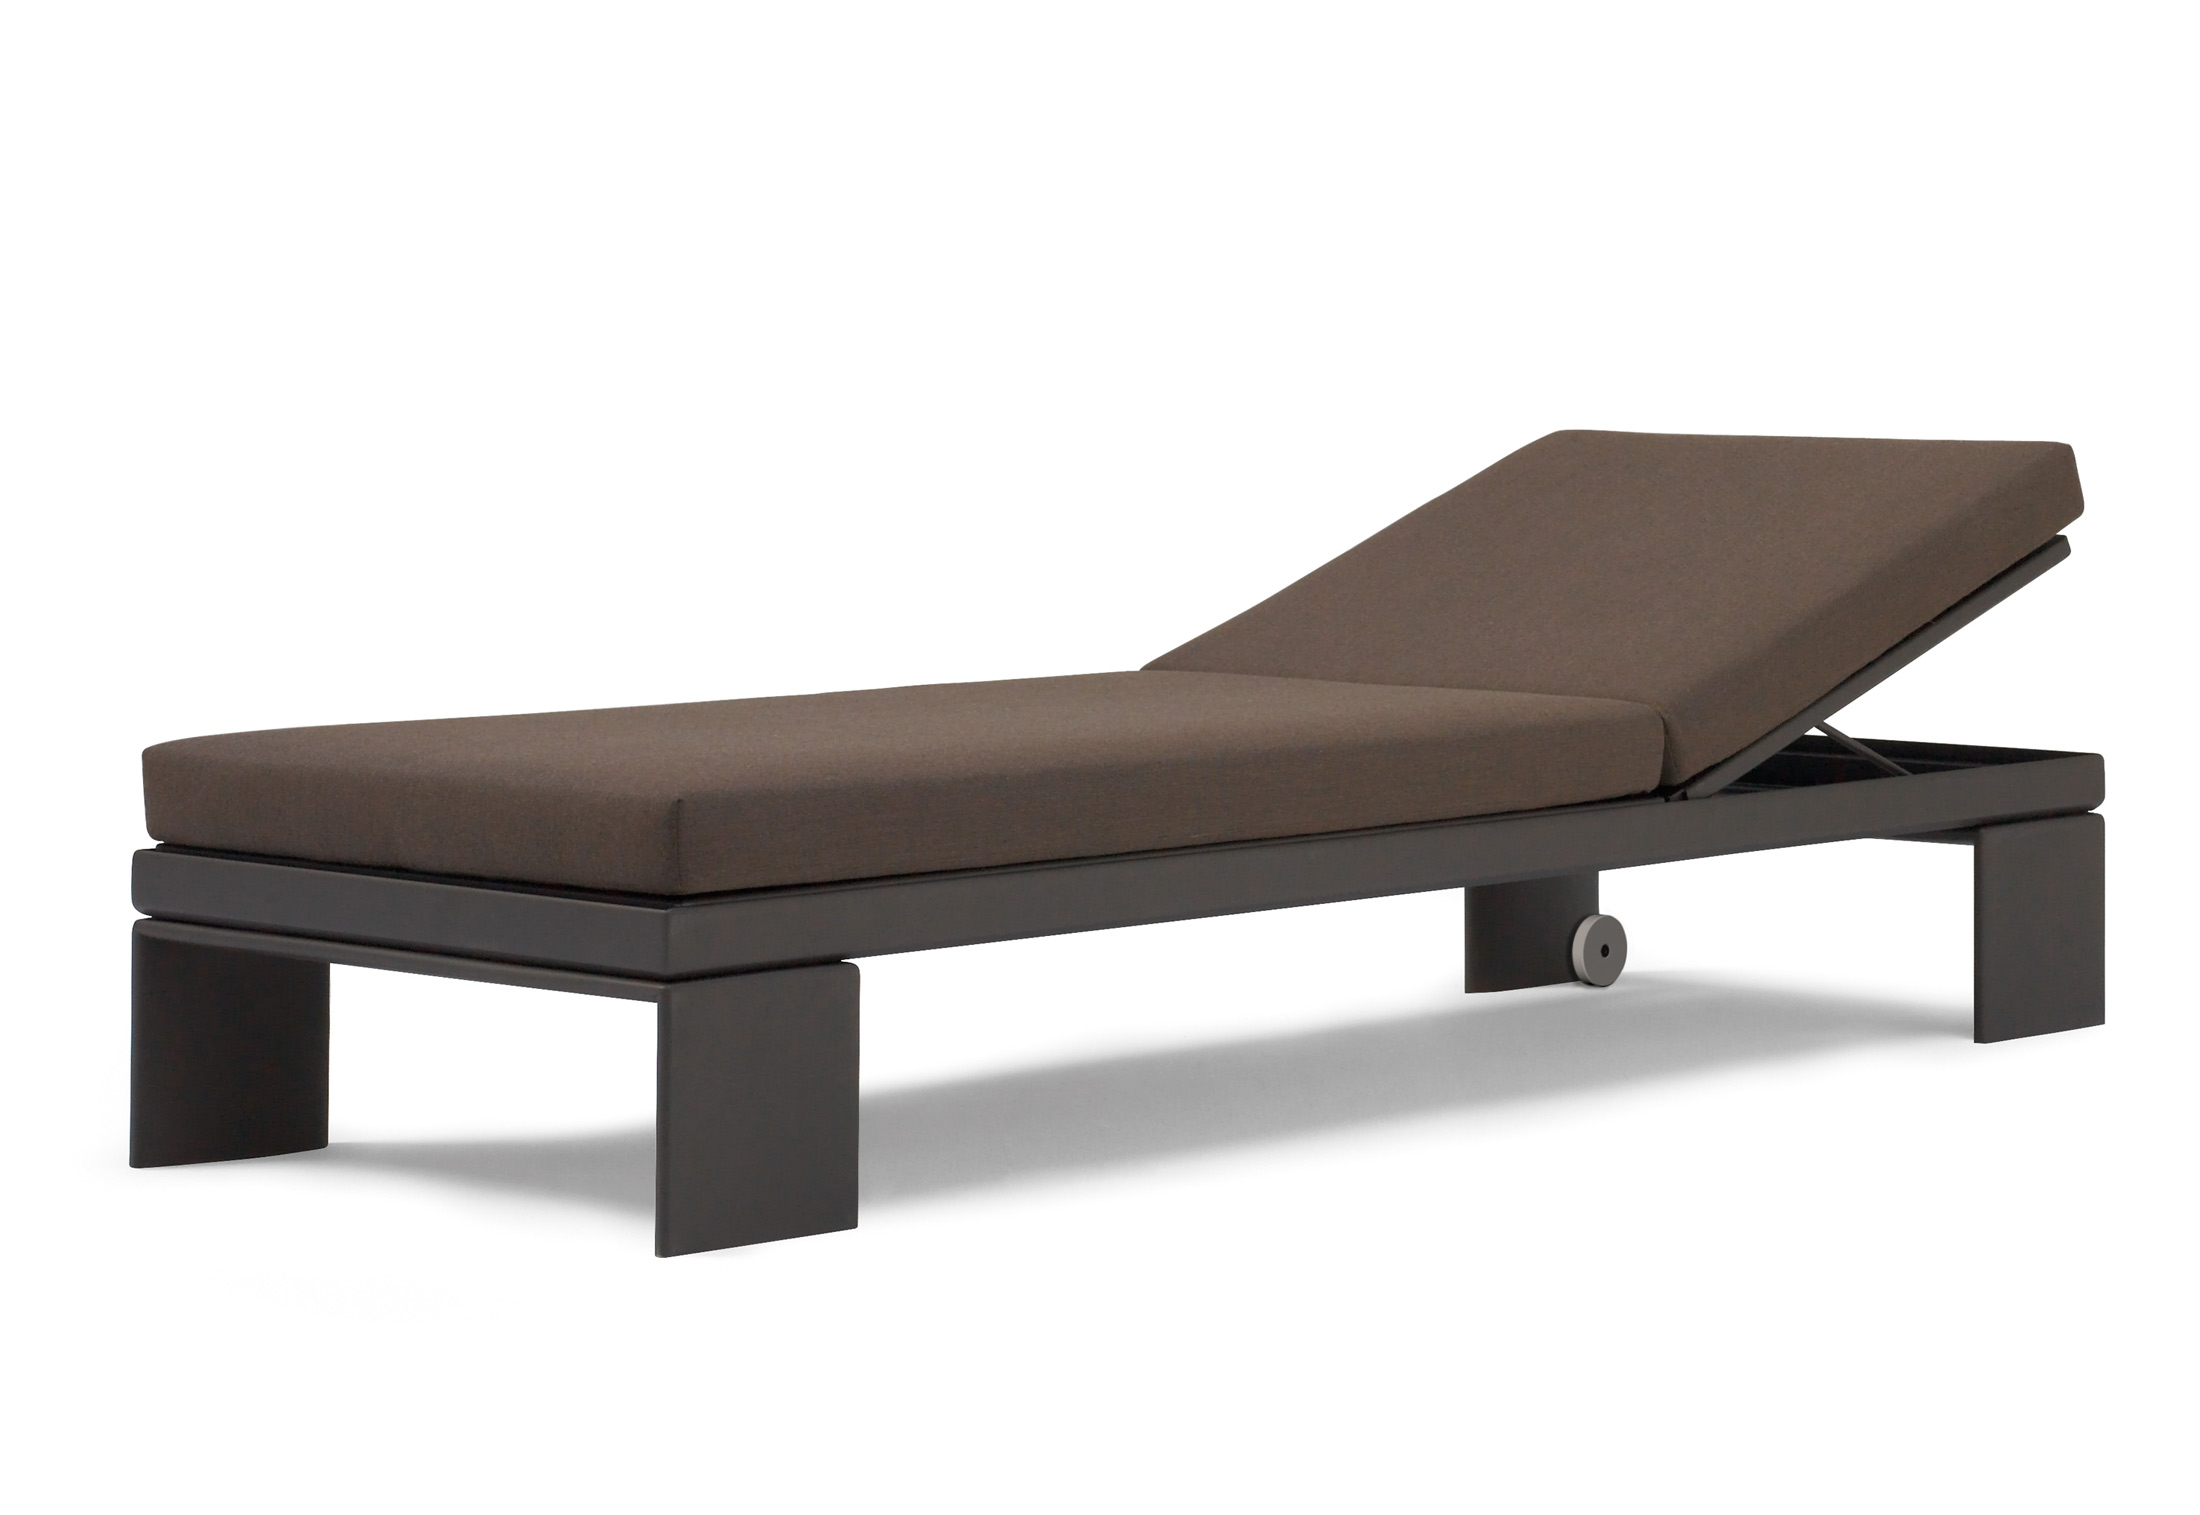 landscape alu chaise longue by andreu world stylepark